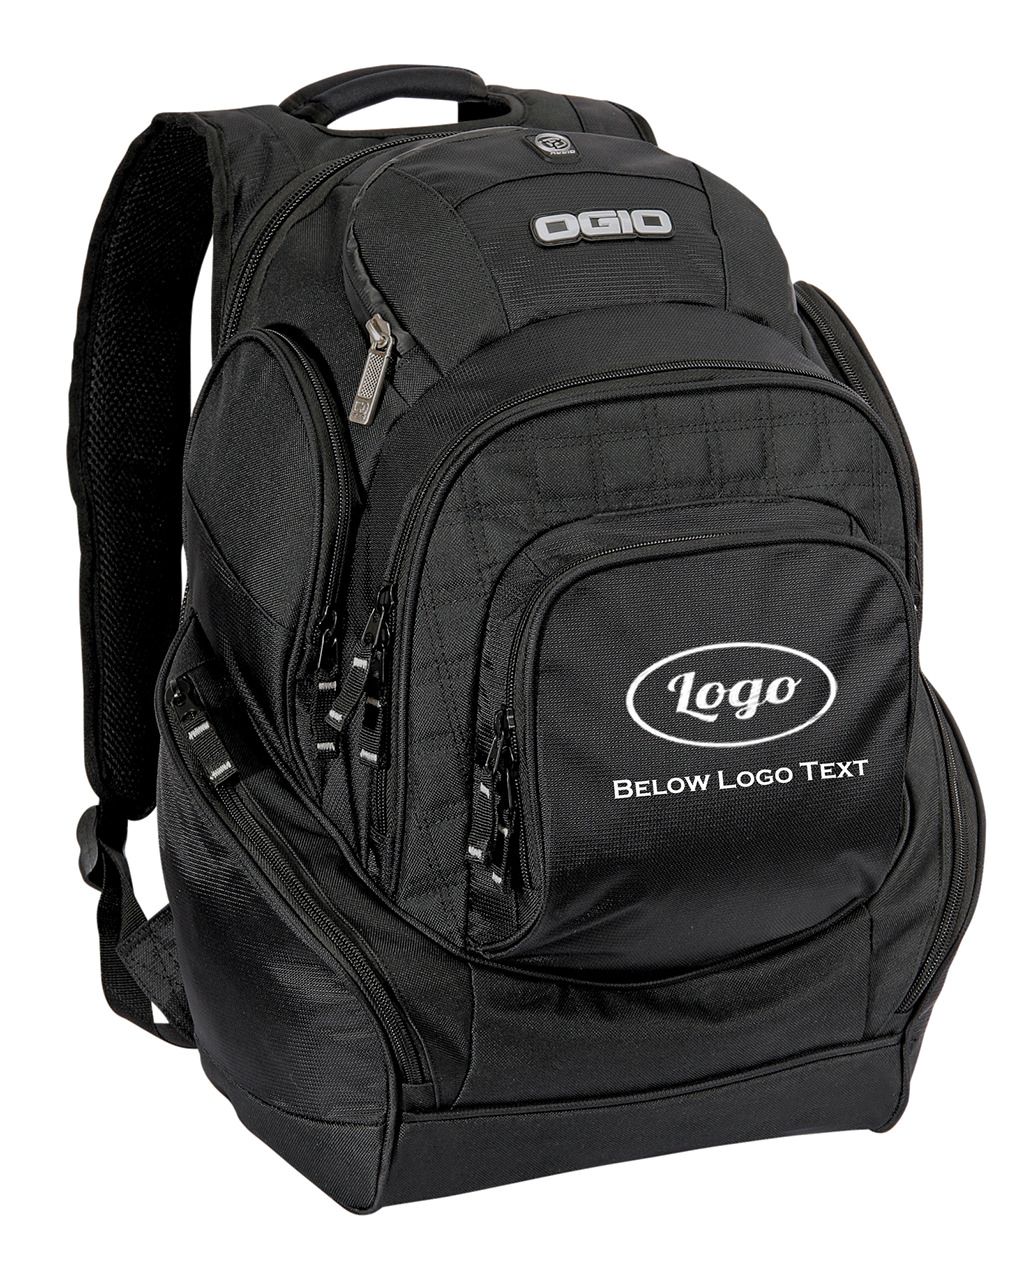 Ogio Mastermind Backpack cJoTzyak